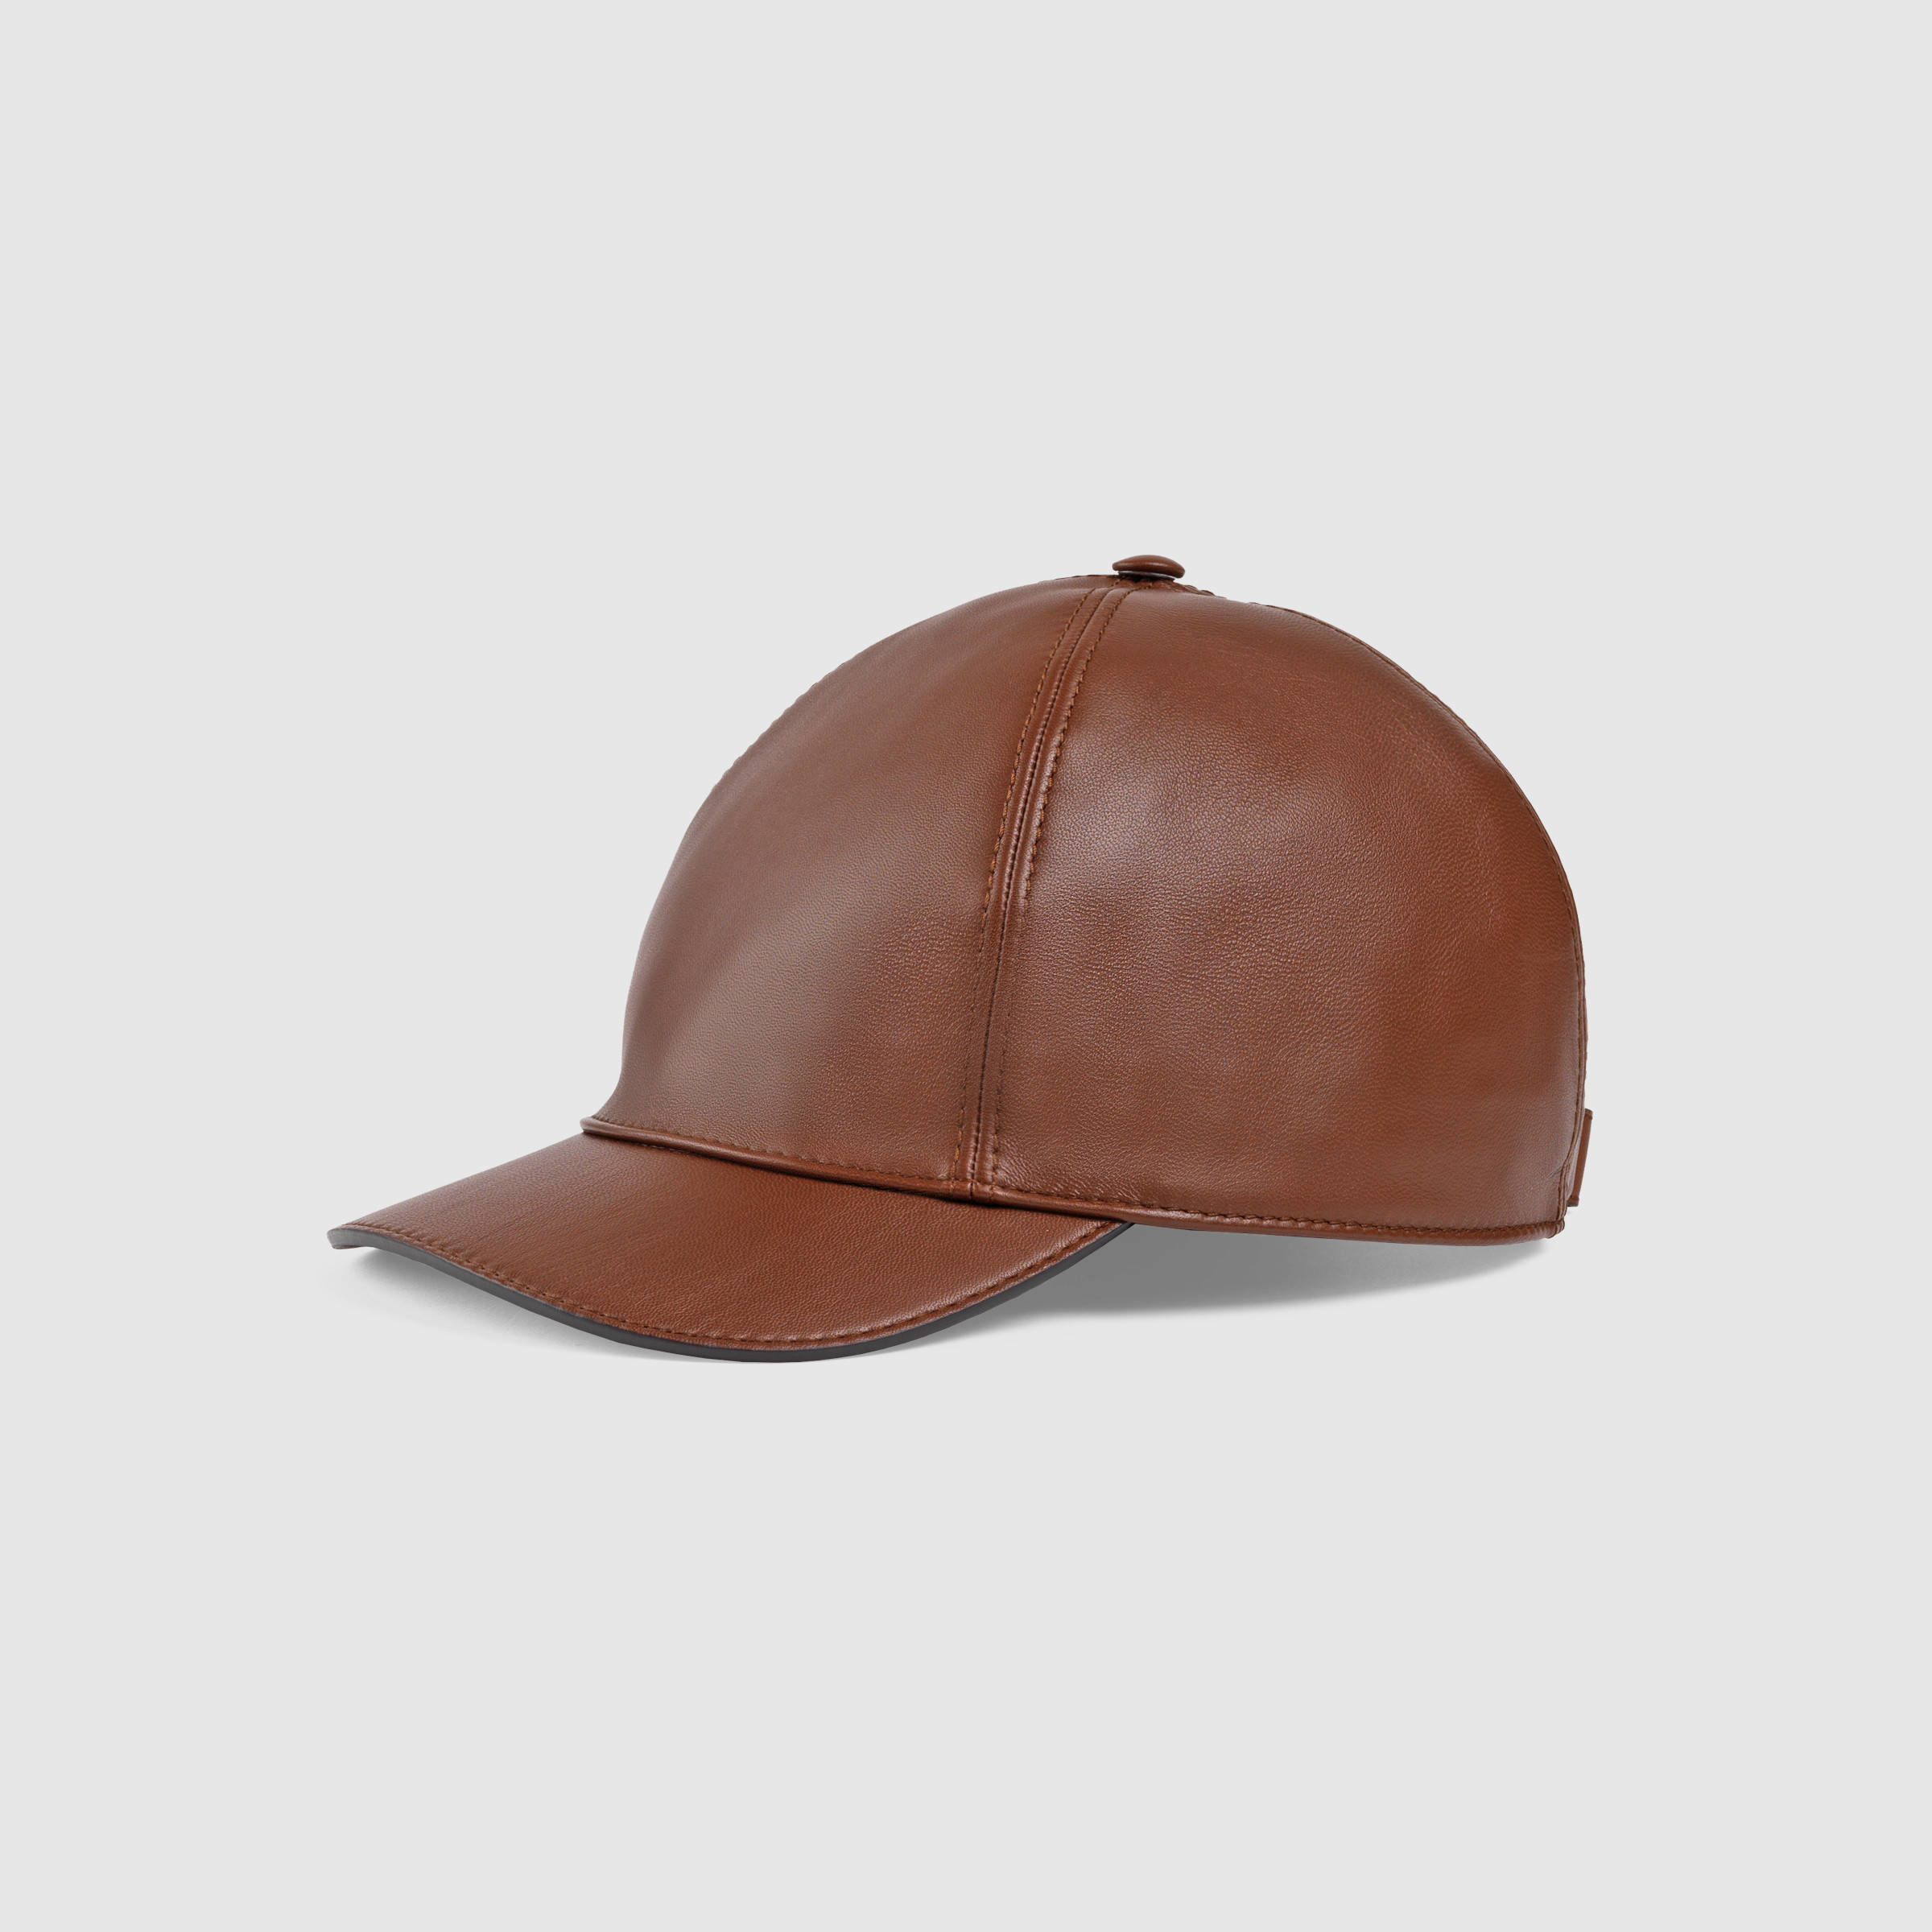 Lyst - Gucci Leather Baseball Hat in Brown for Men 1d73dc15bbe